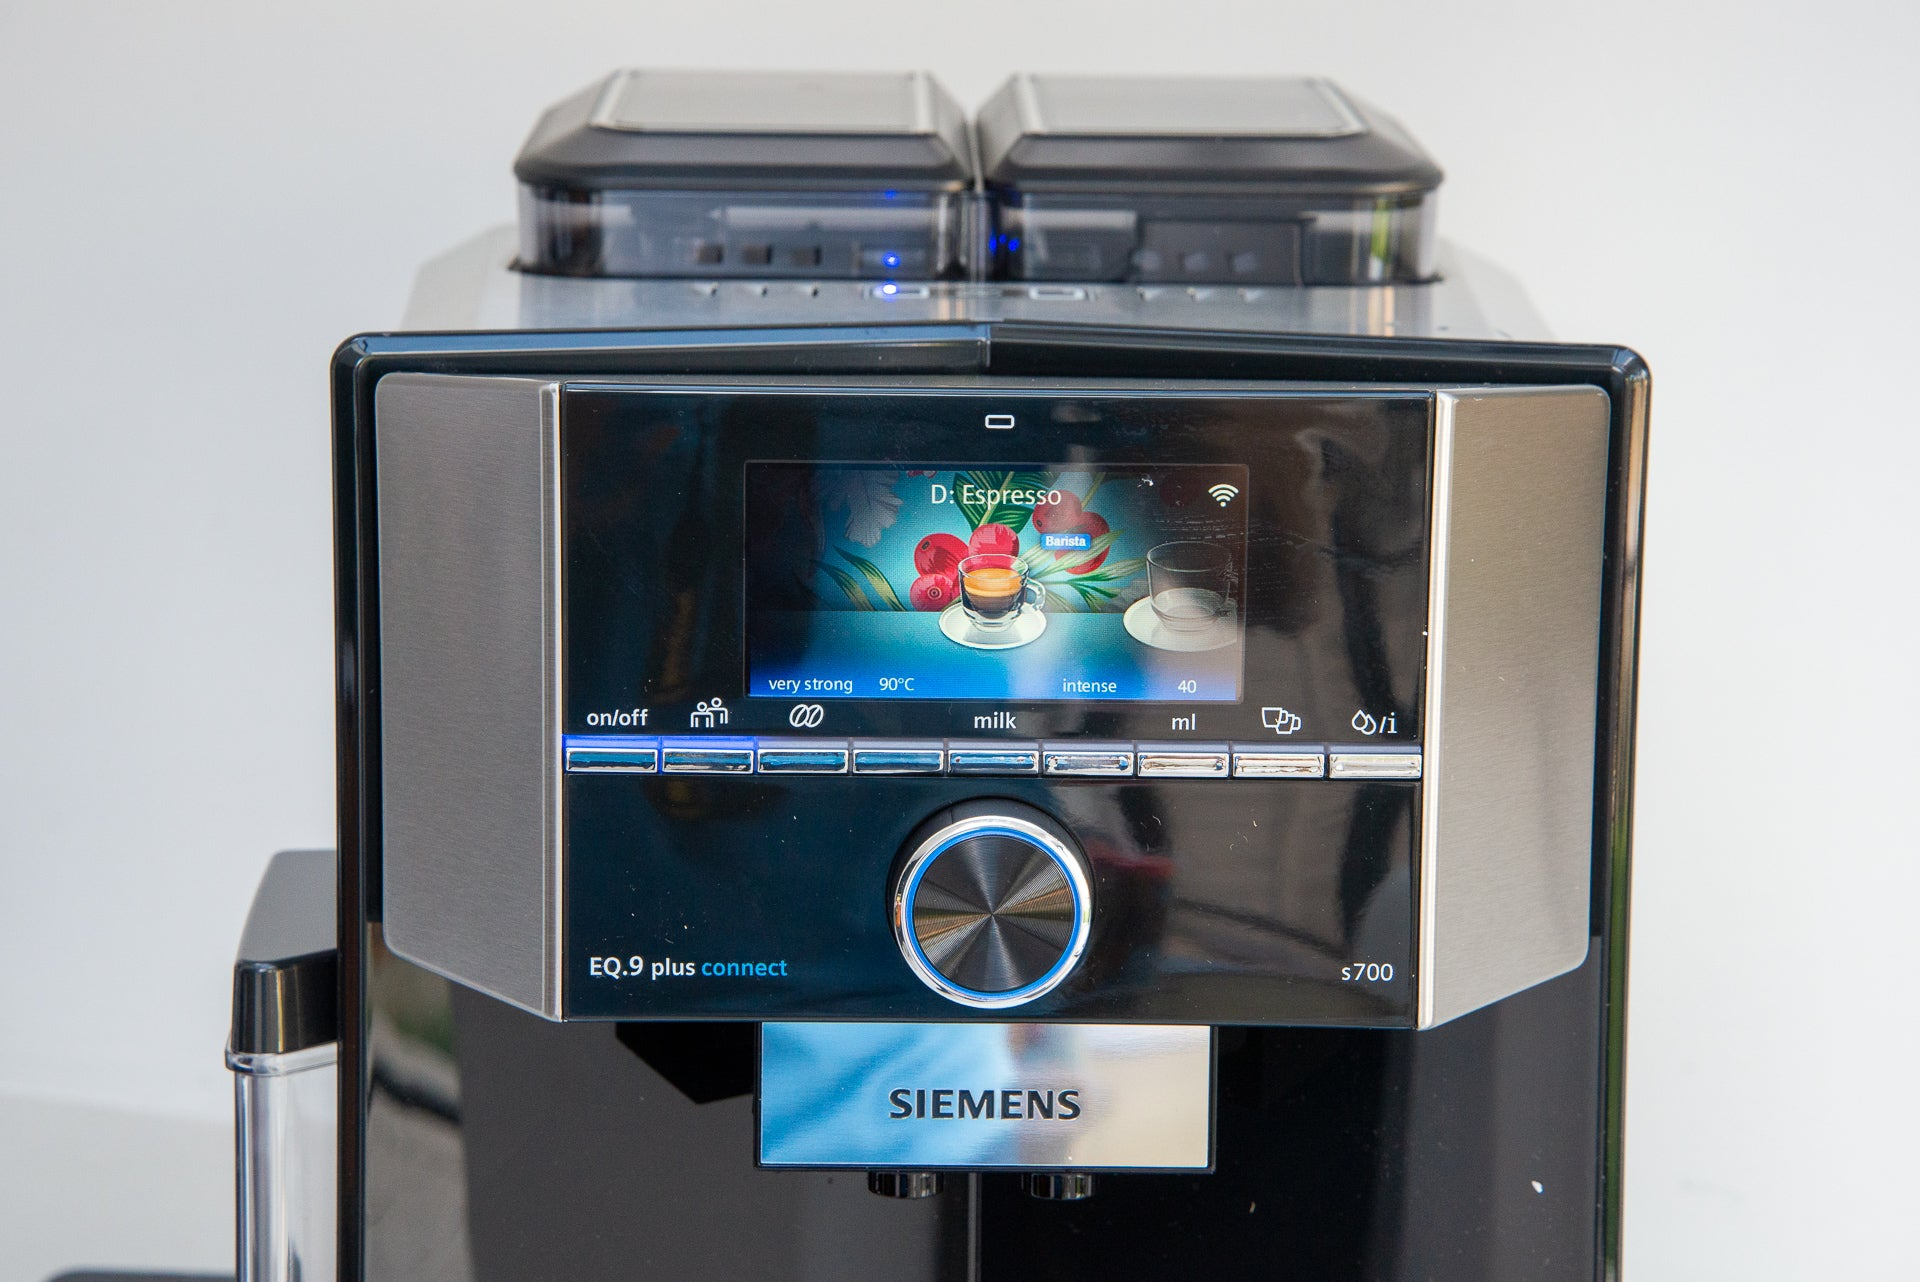 Siemens EQ.9 Plus Connect drink selector